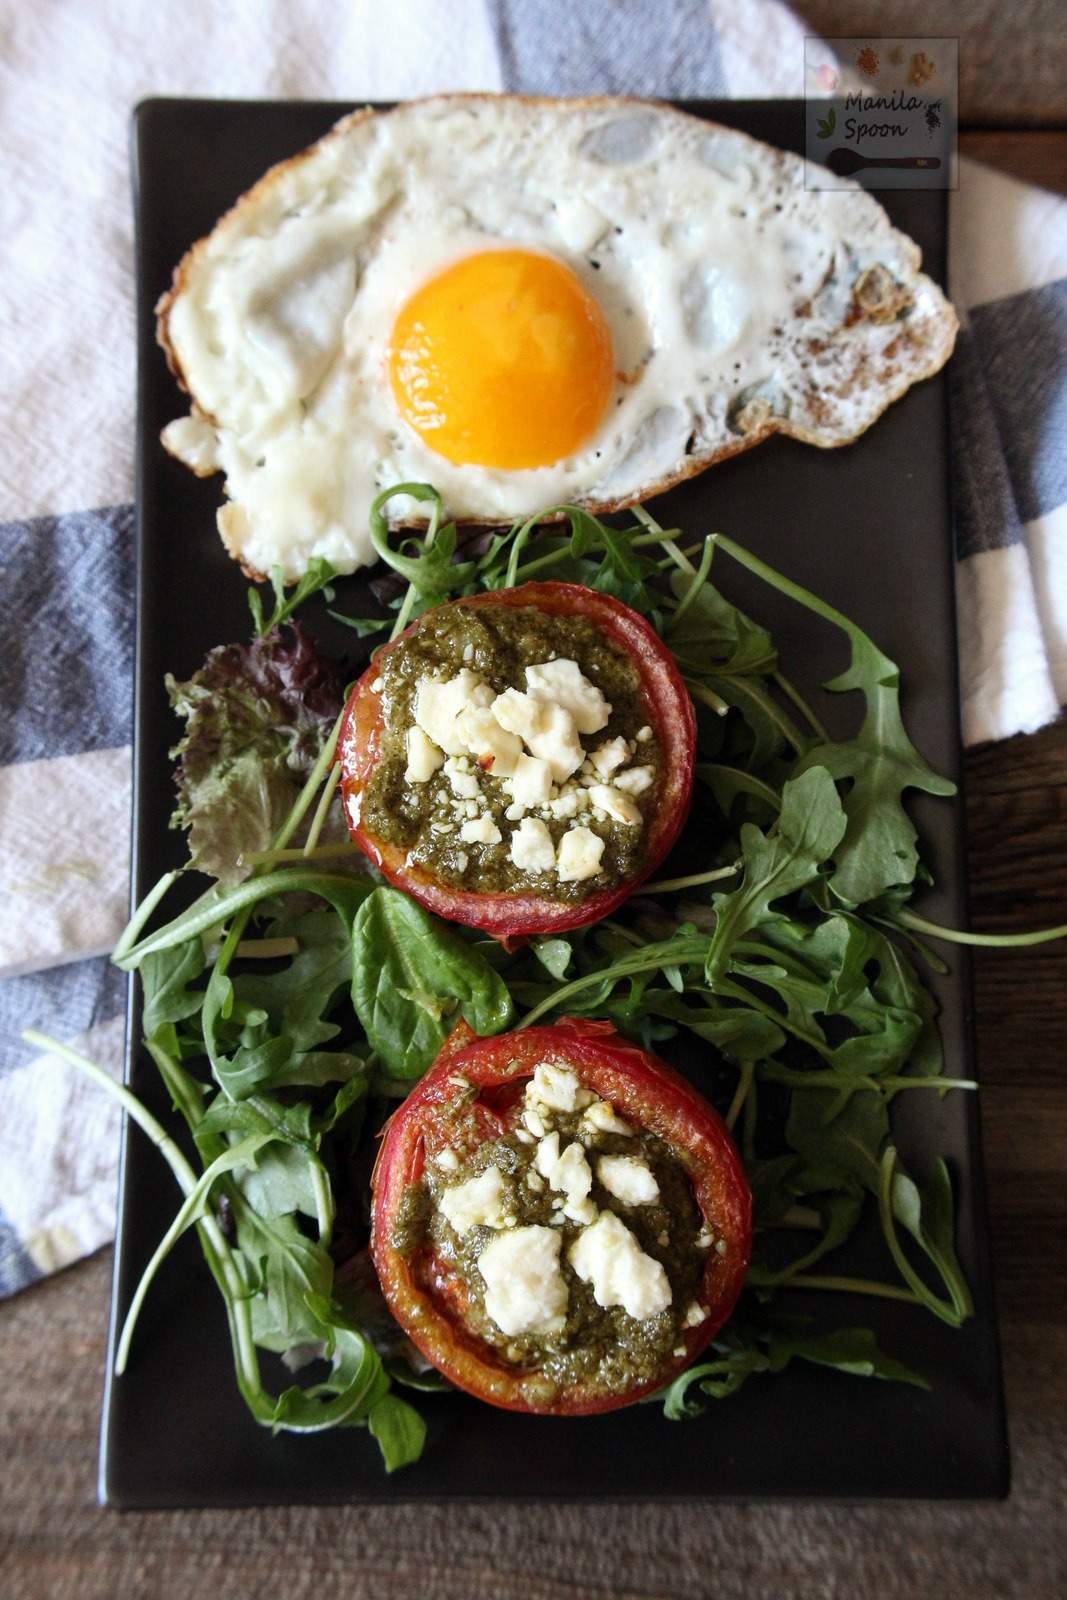 Deliciously good, easy and healthy breakfast or brunch solution - Baked Tomatoes with Pesto and Feta Cheese. Completely gluten-free and low-carb, too! | manilaspoon.com